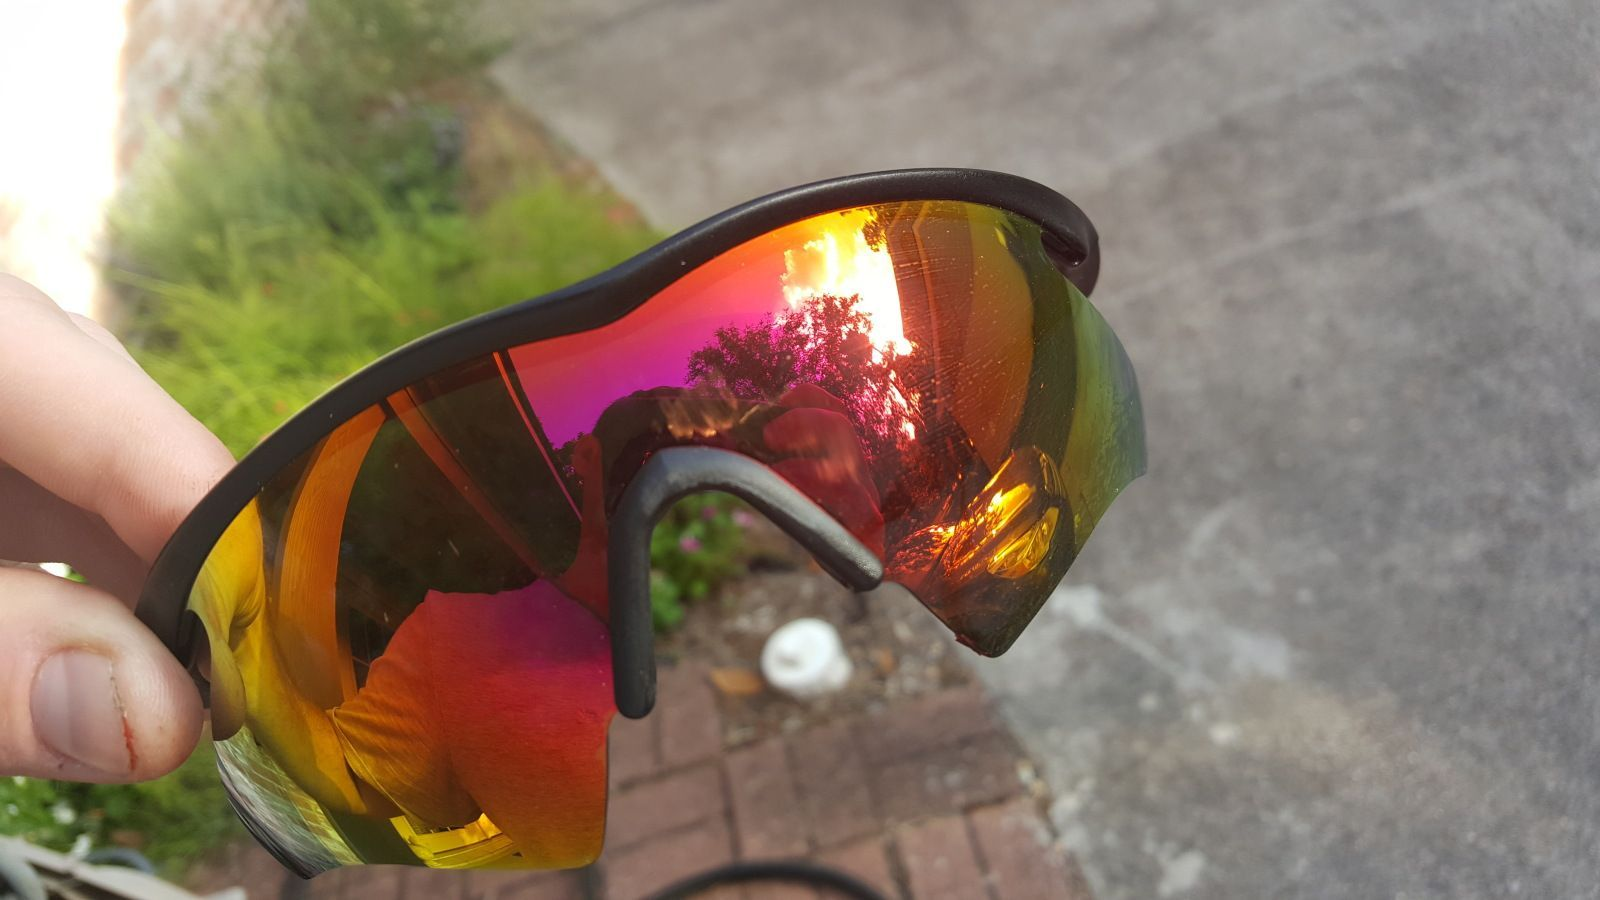 Has A Pair Of Oakley Sunglasses Ever Saved You From Possible Eye Injury? - 108a0lh.jpg